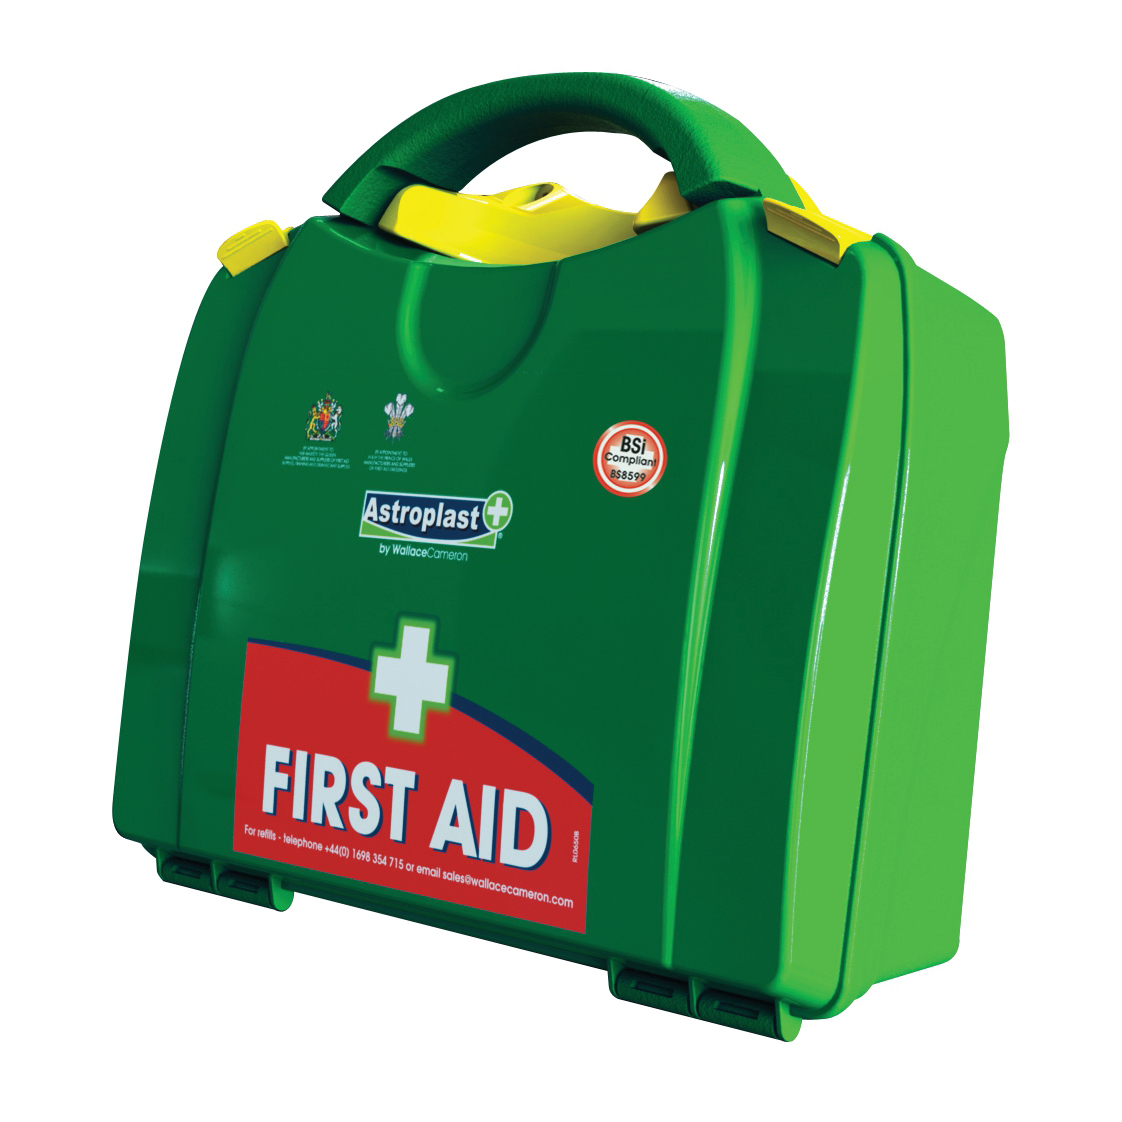 Wallace Cameron BS8599-1 Large Green Box First Aid Kit 1-50 Users Ref 1002657